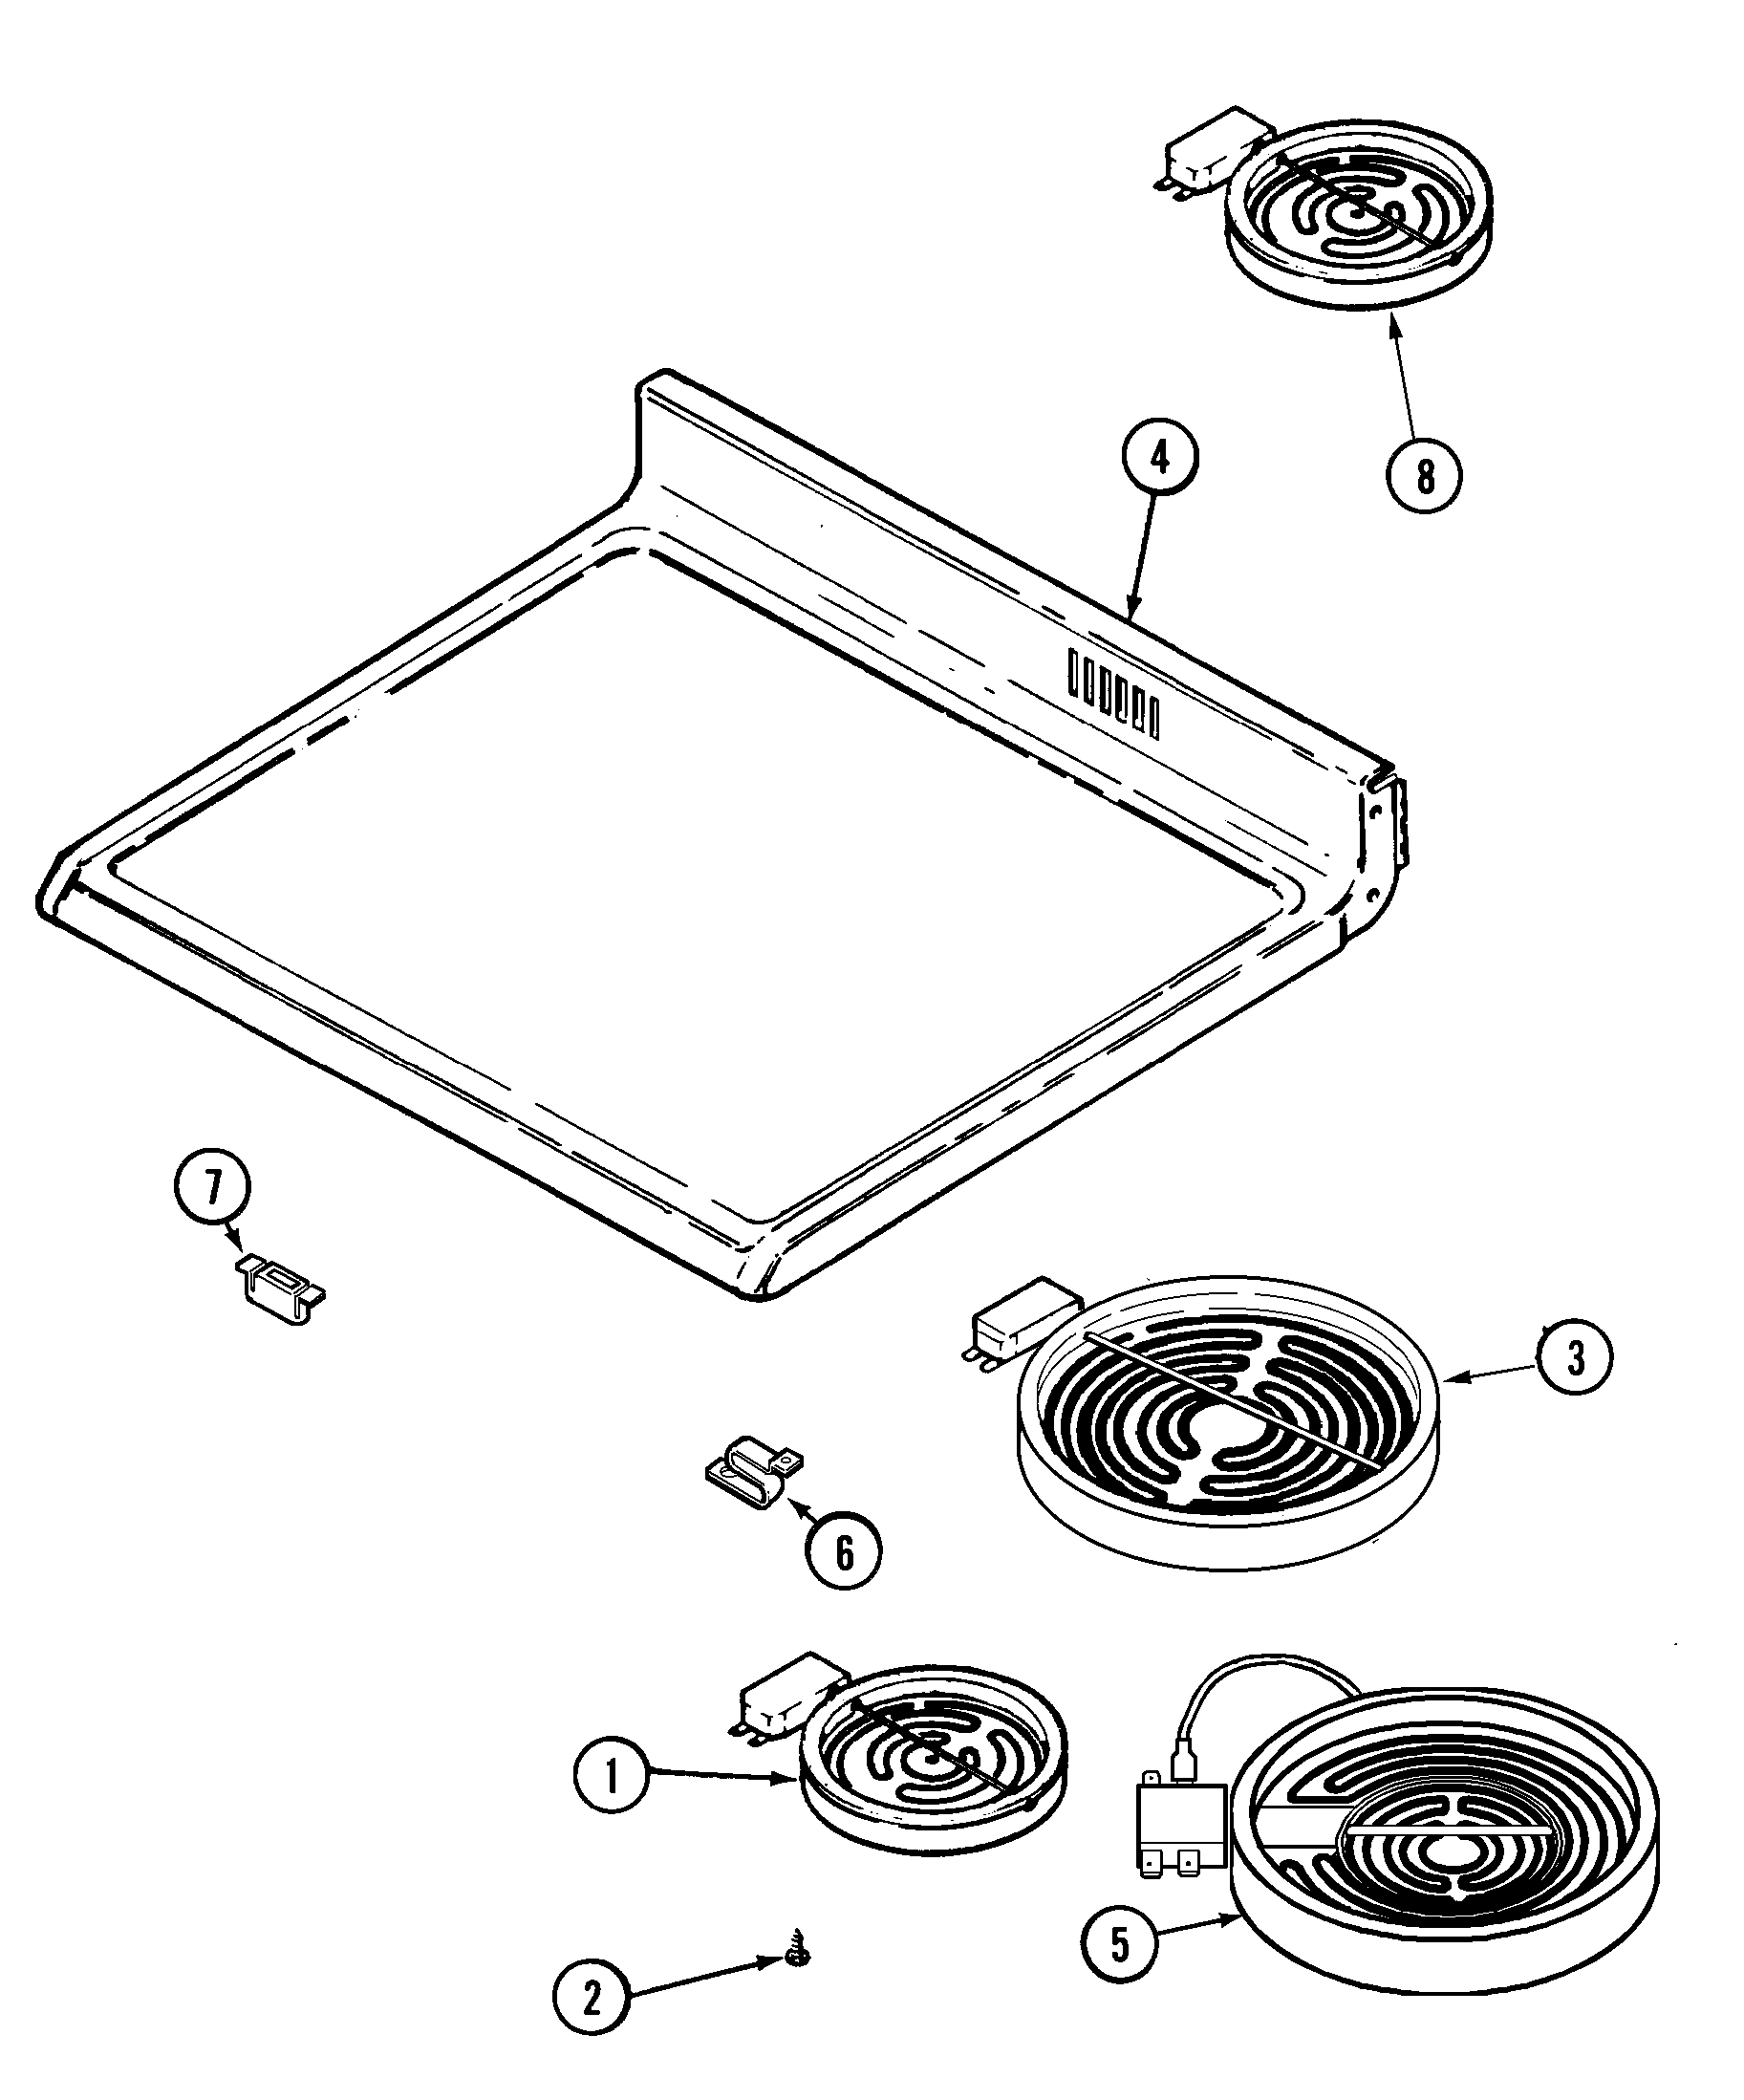 hight resolution of mer6772baw range top assembly parts diagram